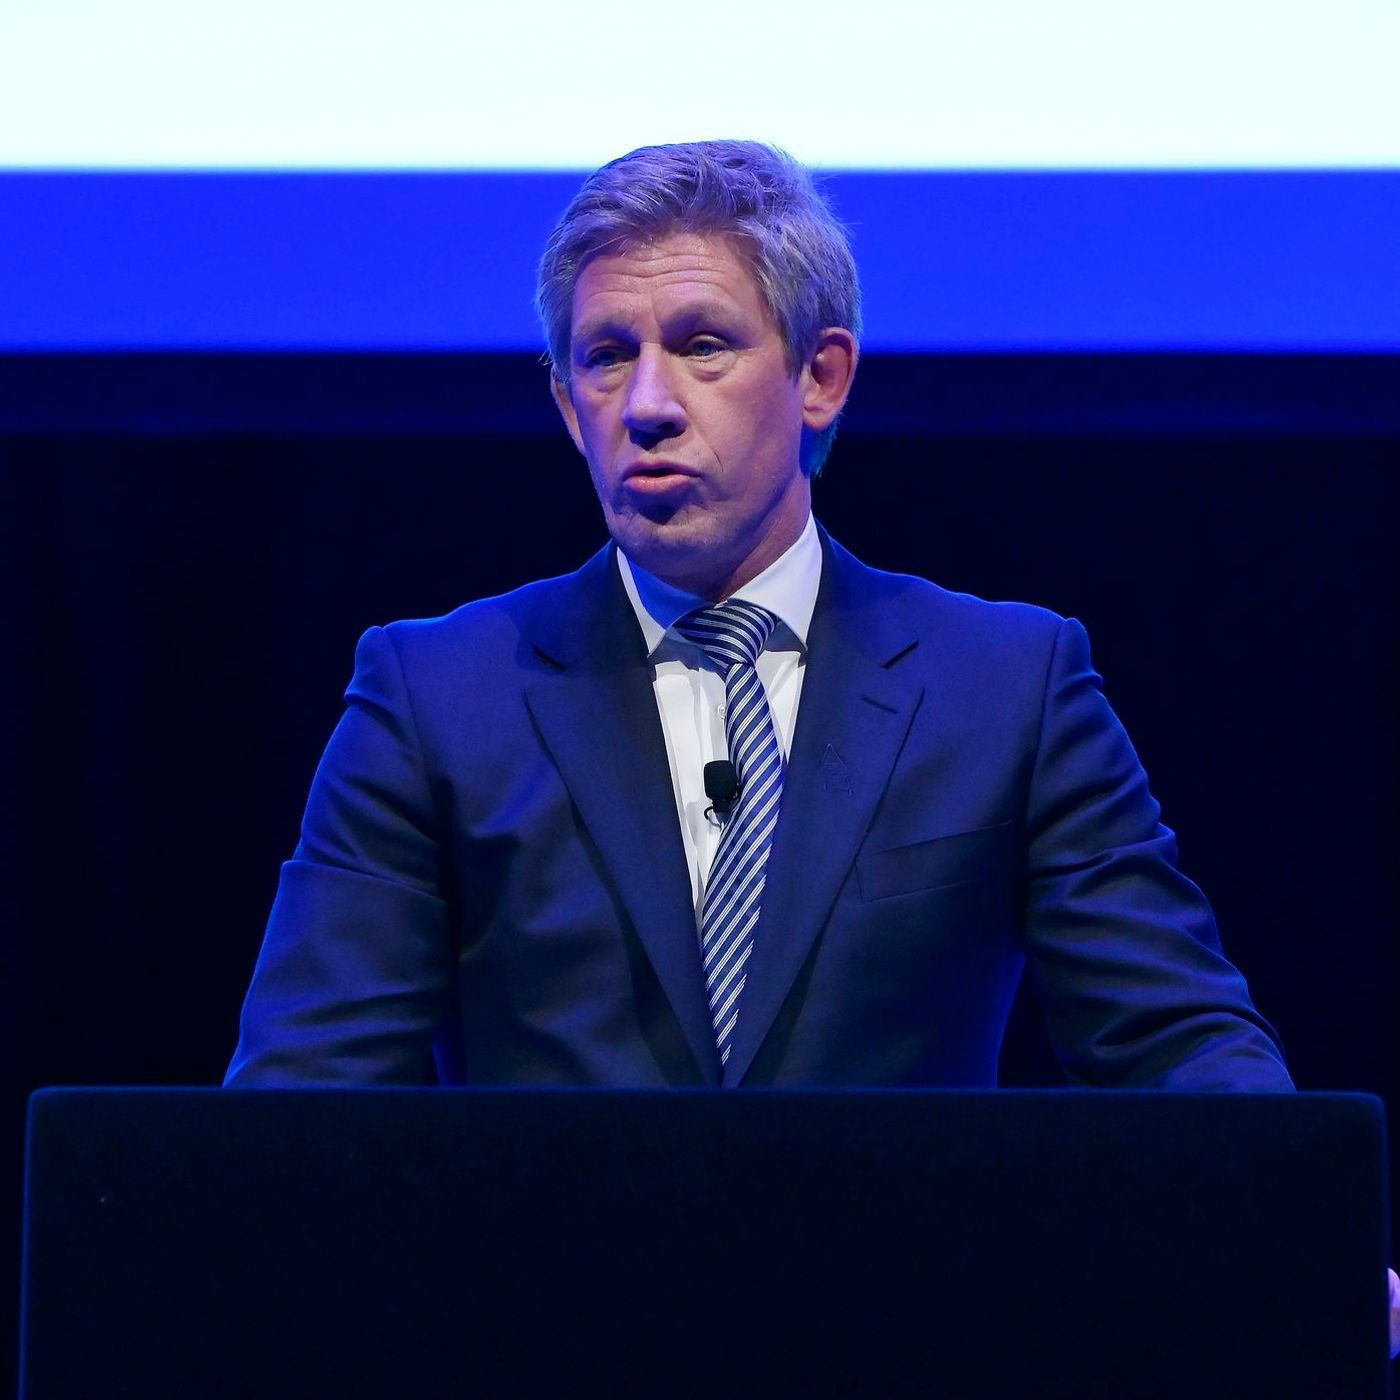 Royal Blue: Marcel Brands AGM comments, Ben Godfrey's growing reputation & the great gherkin debate...